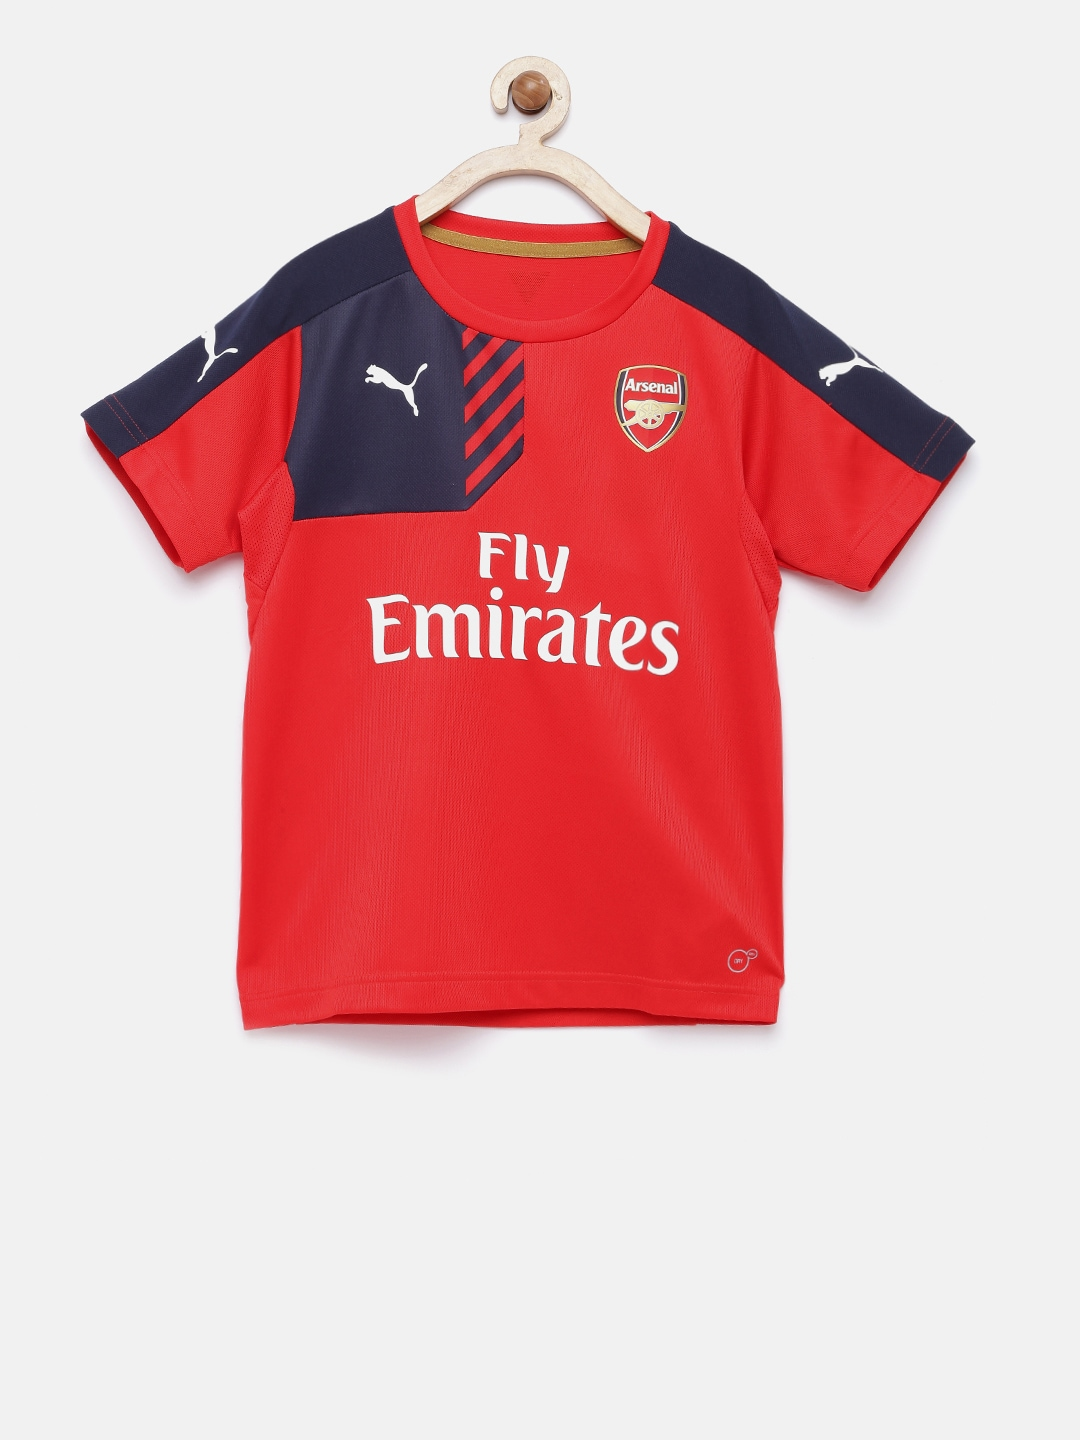 864dbdc4c Jersey Boys- Buy Boys Jersey online in India